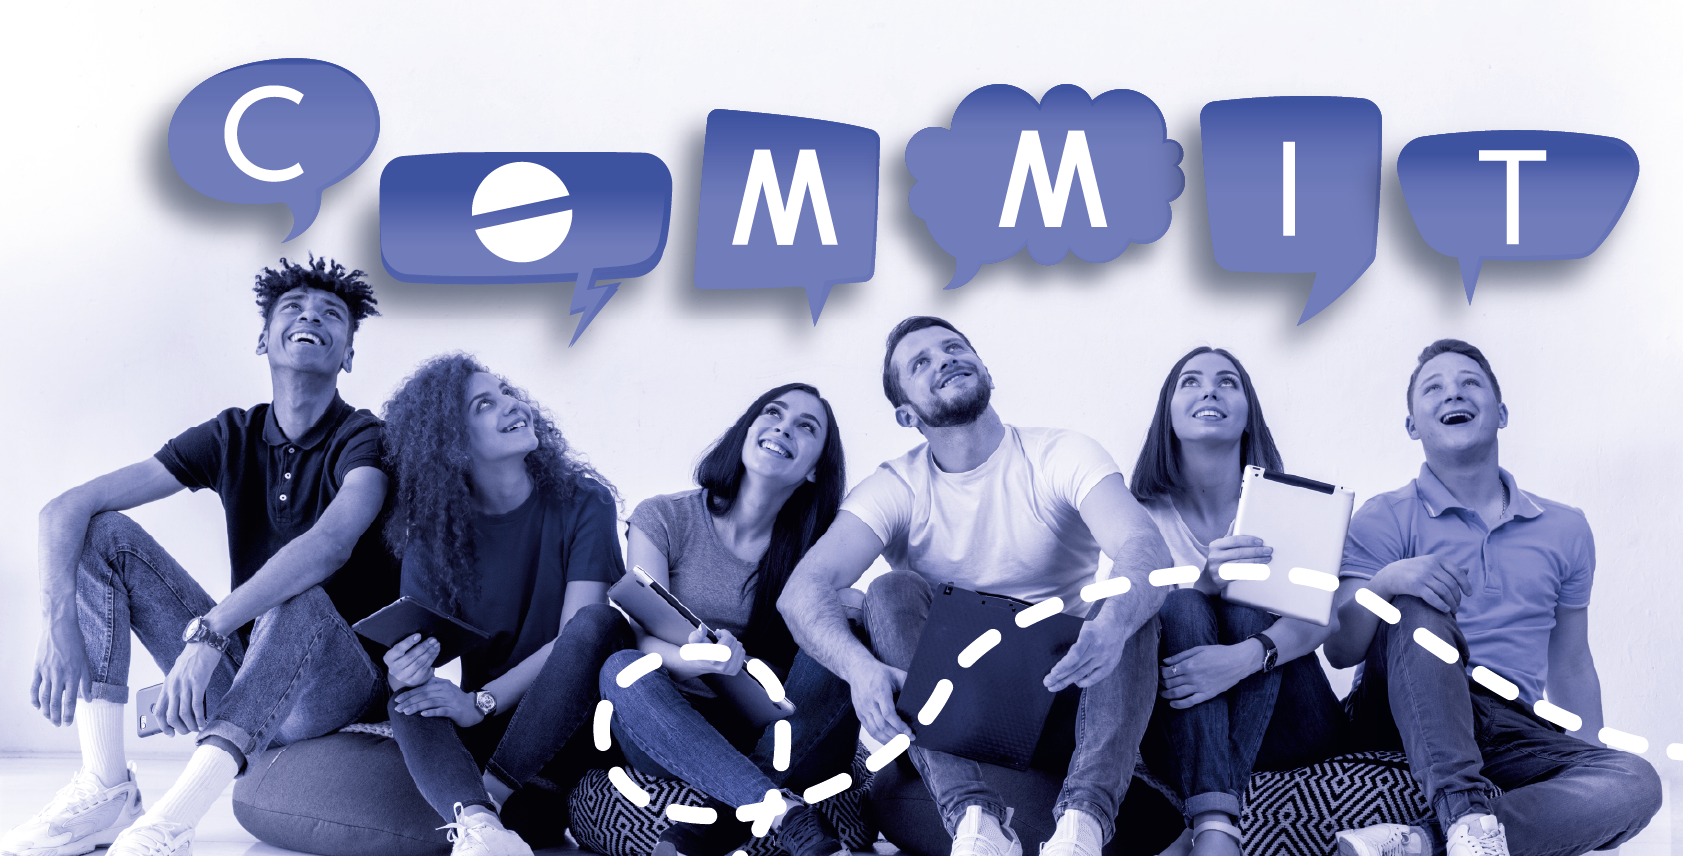 COMMIT - COMMunIcation campaign against exTremism and radicalisation